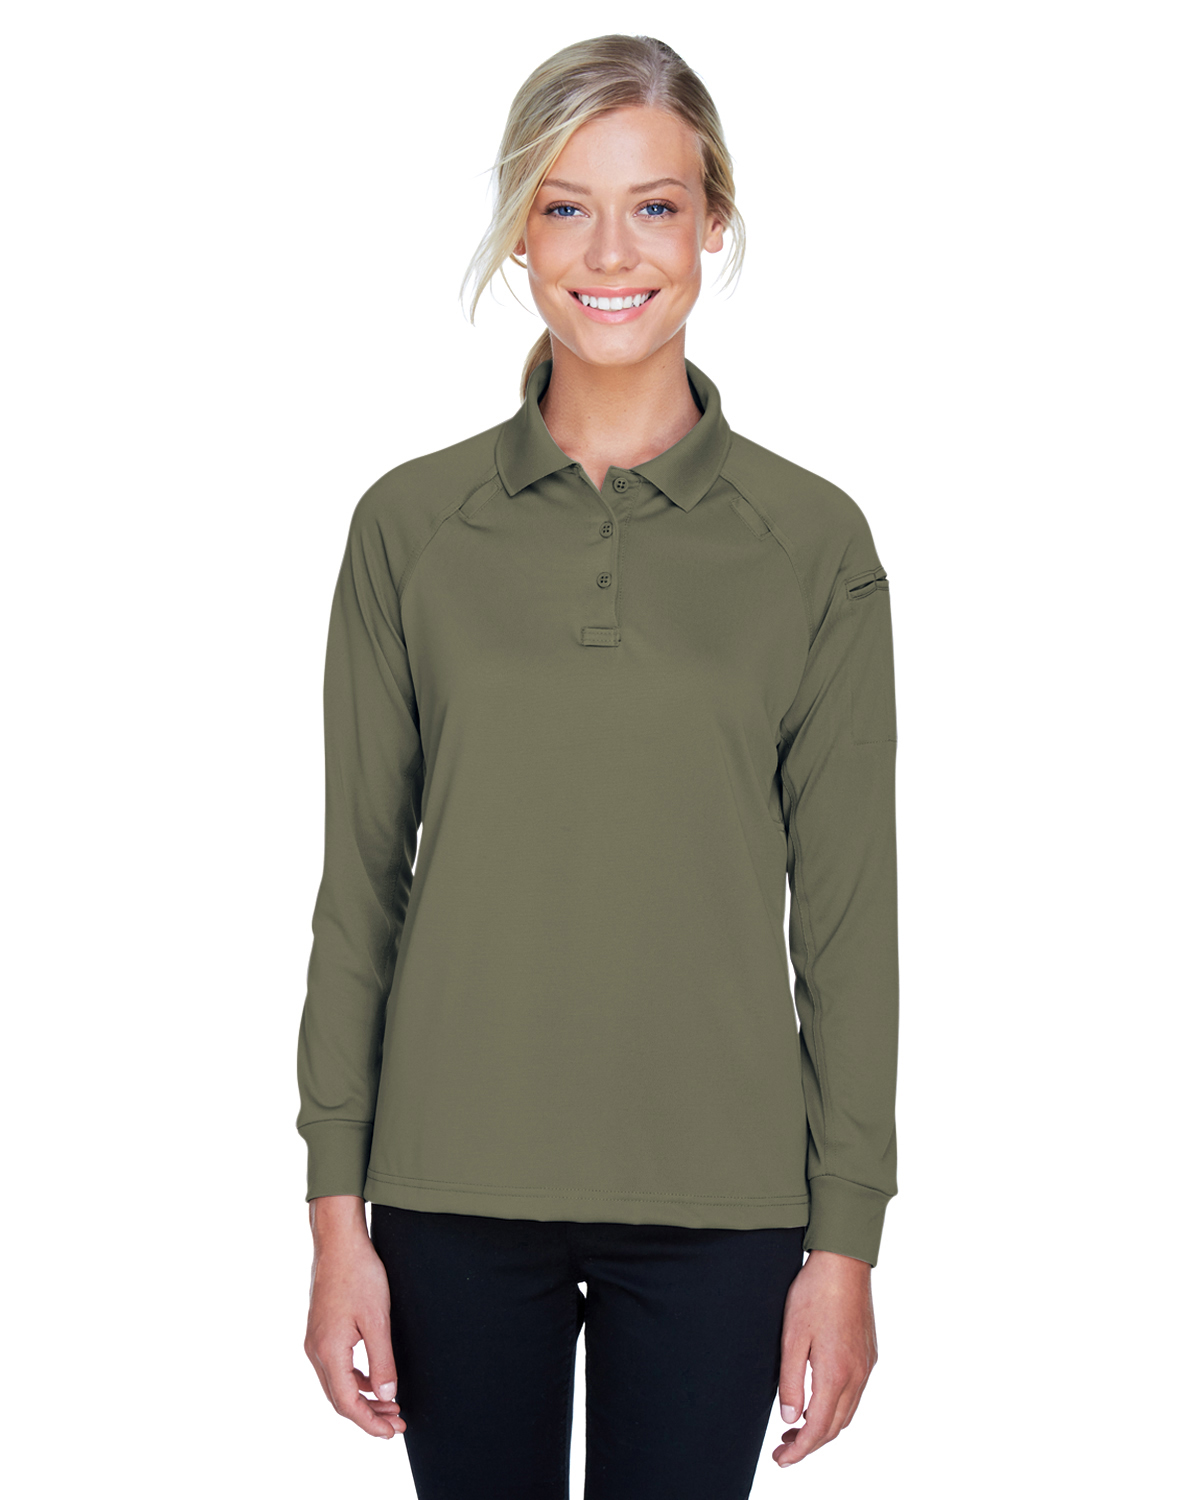 PSO - Ladies Tactical Long-Sleeve Performance Polo -Harriton